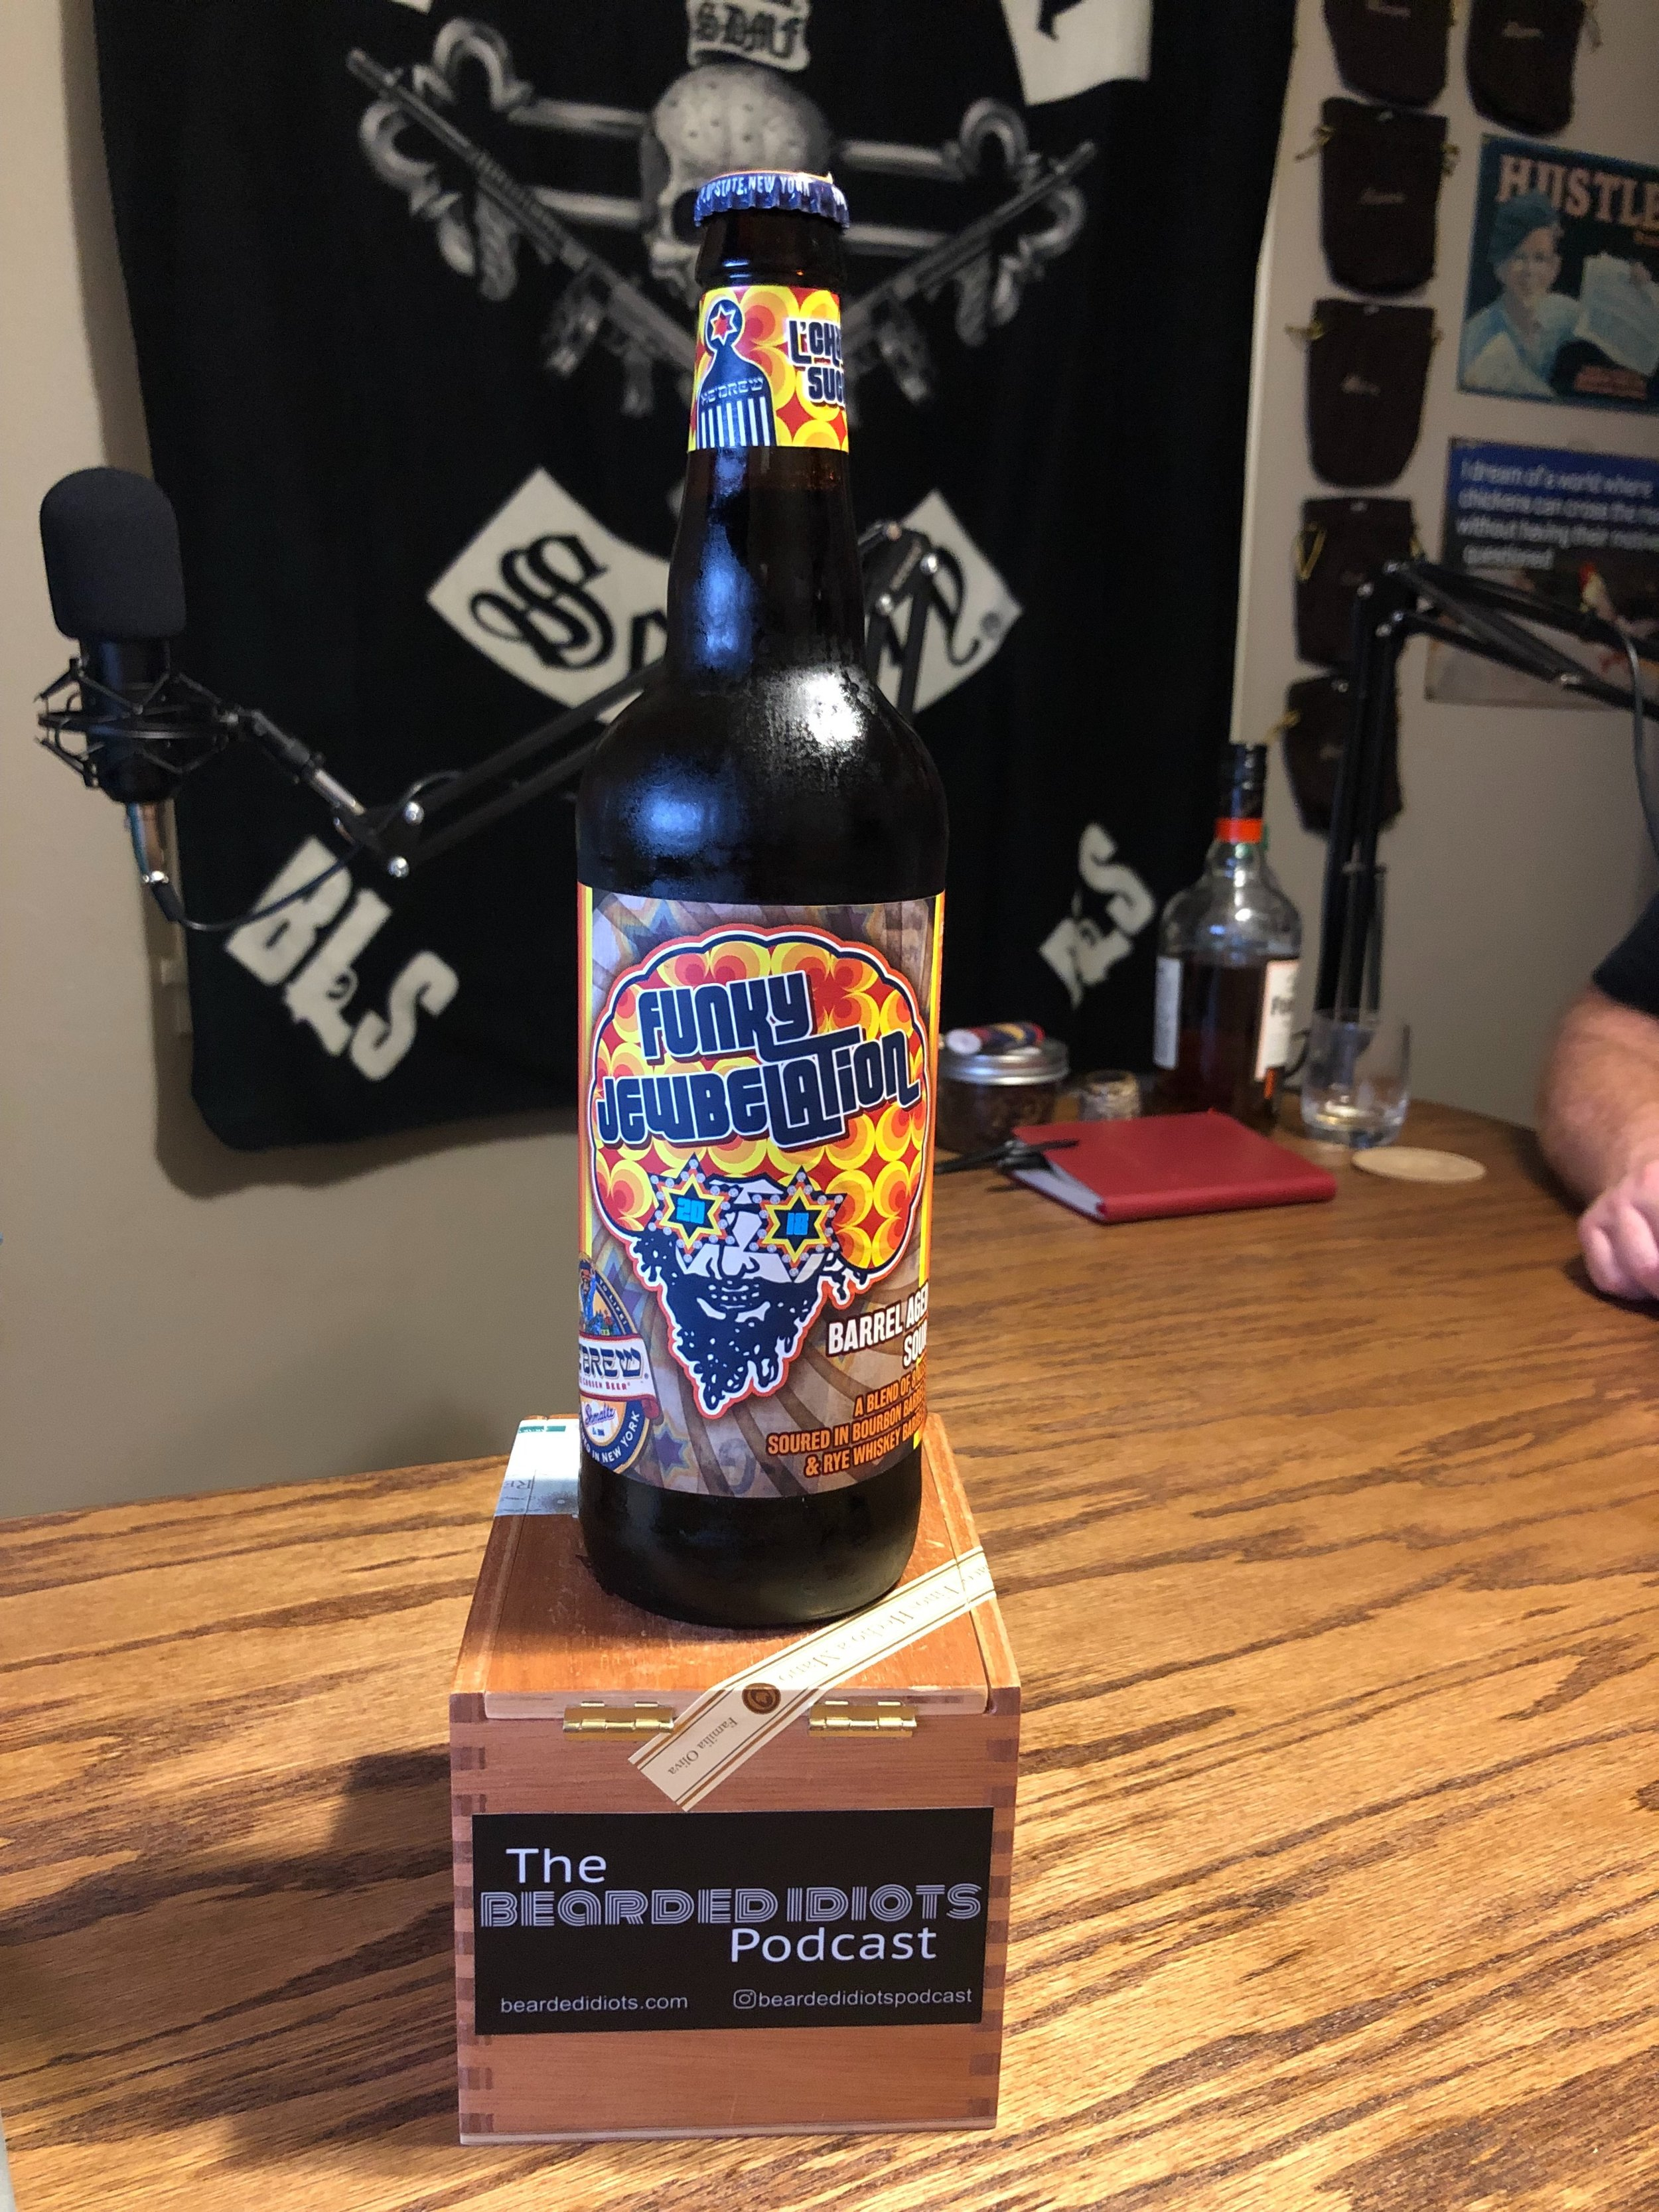 Episode the 54th - Funky Jewbelation - First review of a beer, Idiots perspective on jewish stuff, Texas murders a murderer